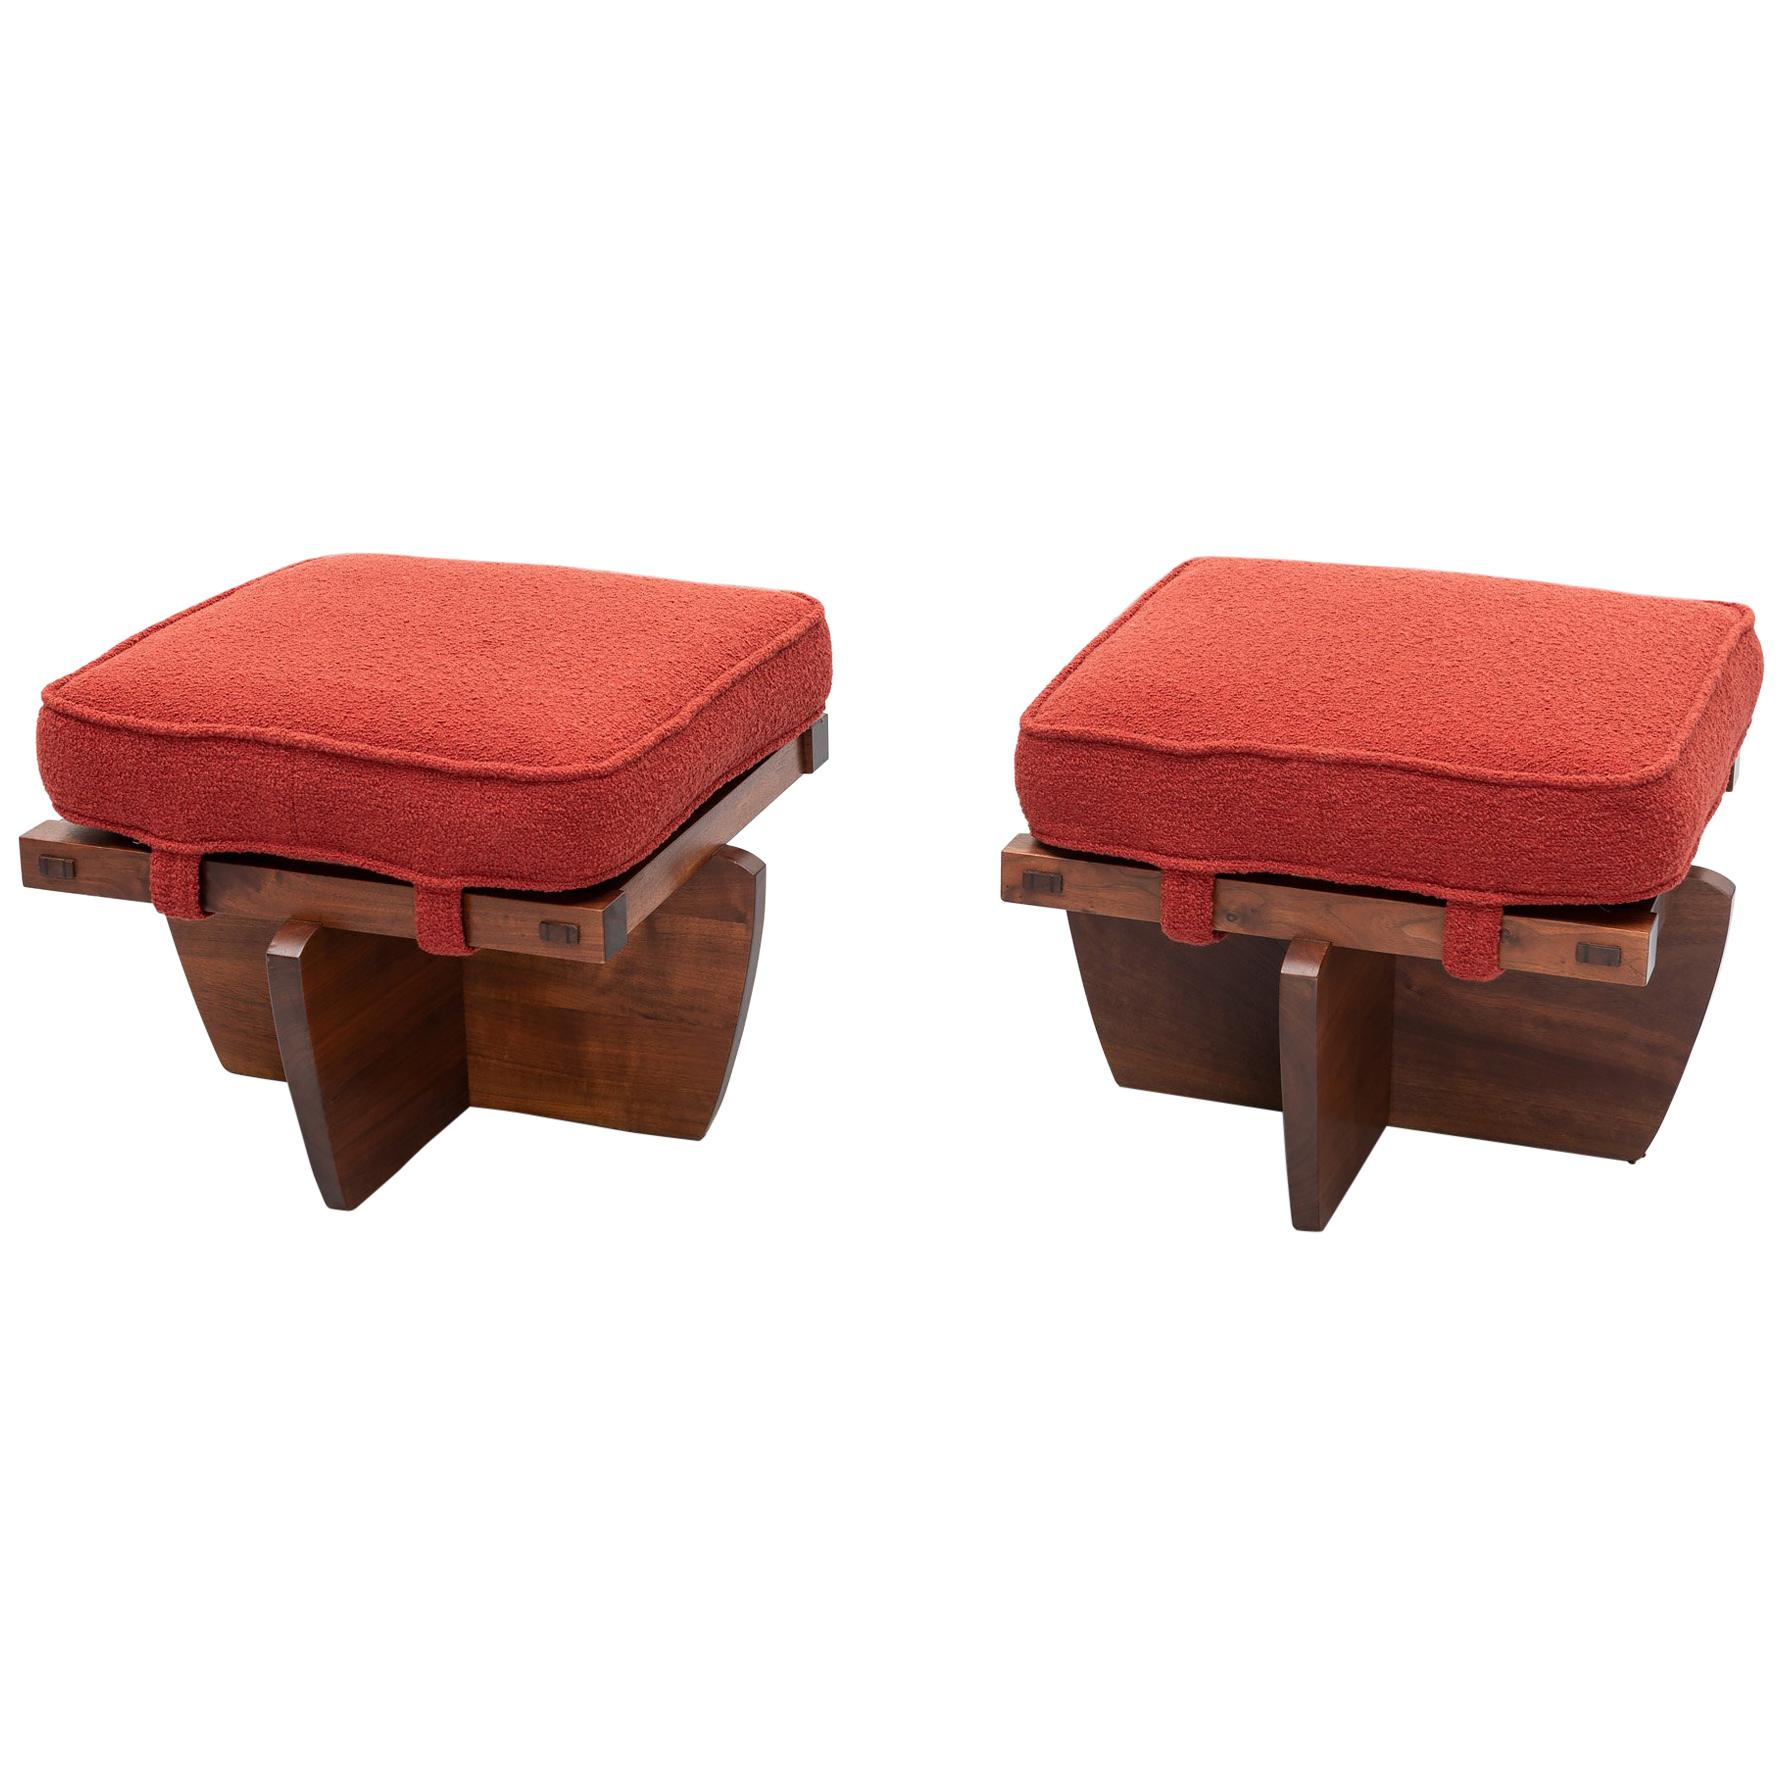 Image With Dimension For Squared Up Steel Gold Step Stool